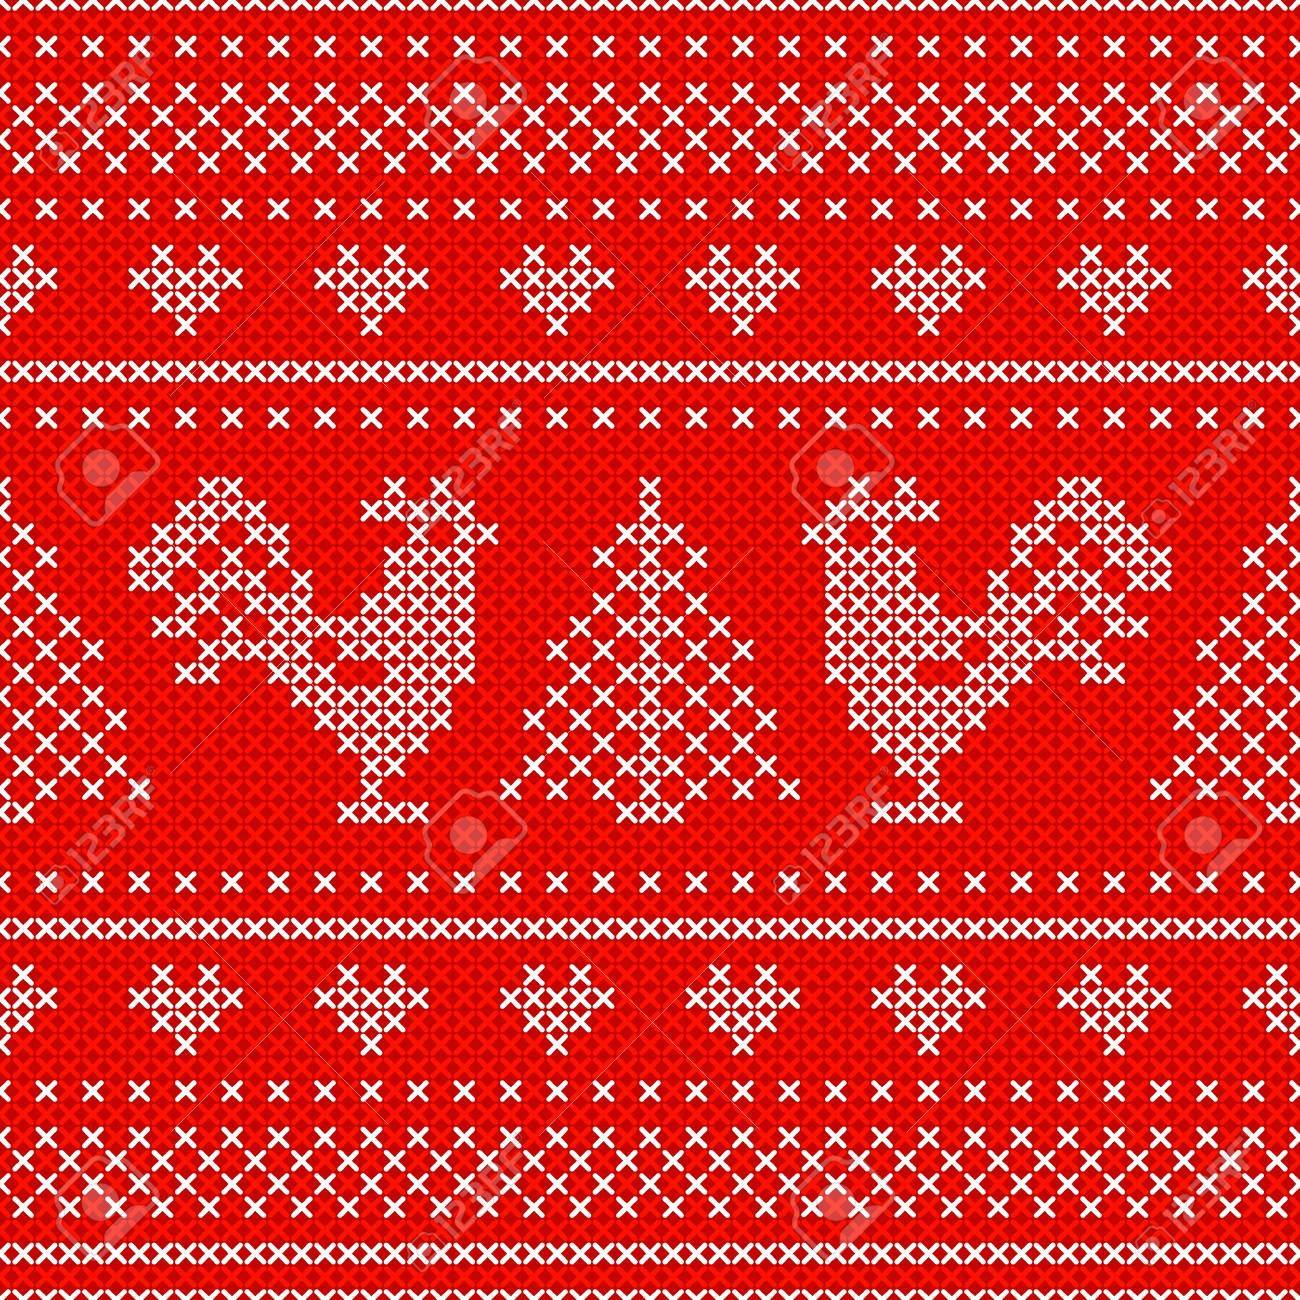 Red Holiday Seamless Pattern With Cross Stitch Embroidered Roosters